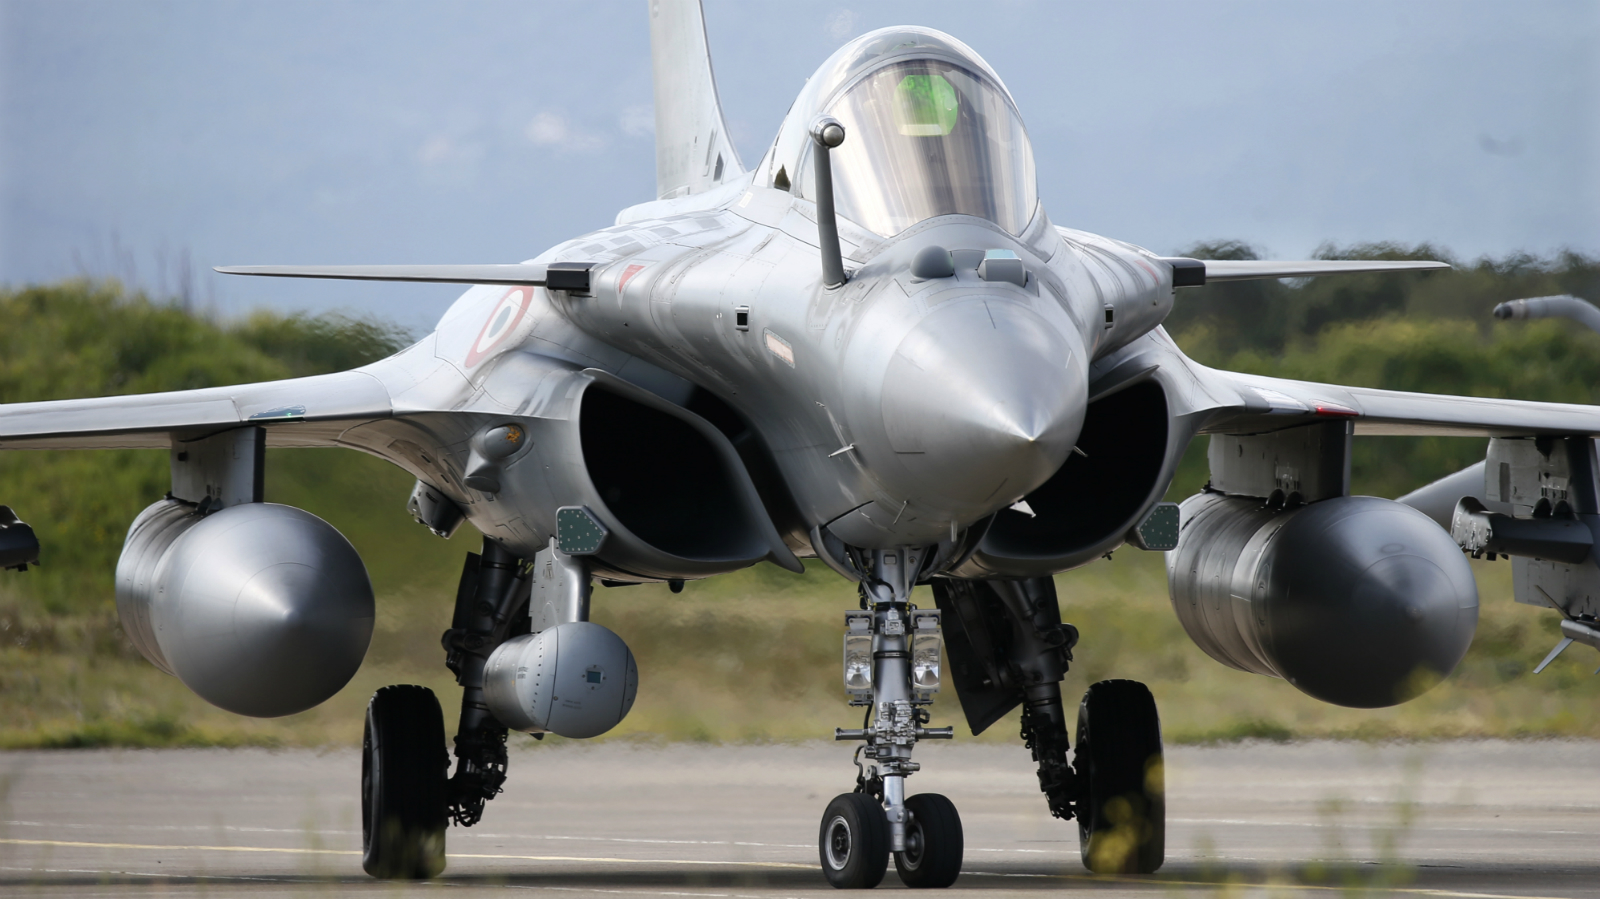 A French Air Force Rafale fighter jet takes part in the close air support (CAS) exercise Serpentex 2016 hosted by France in the Mediterranean island of Corsica, at Solenzara air base, March 16, 2016. Serpentex is an annual exercise that involves joint terminal attack controllers (JTACs) from 12 countries from March 7 to March 25, 2016.